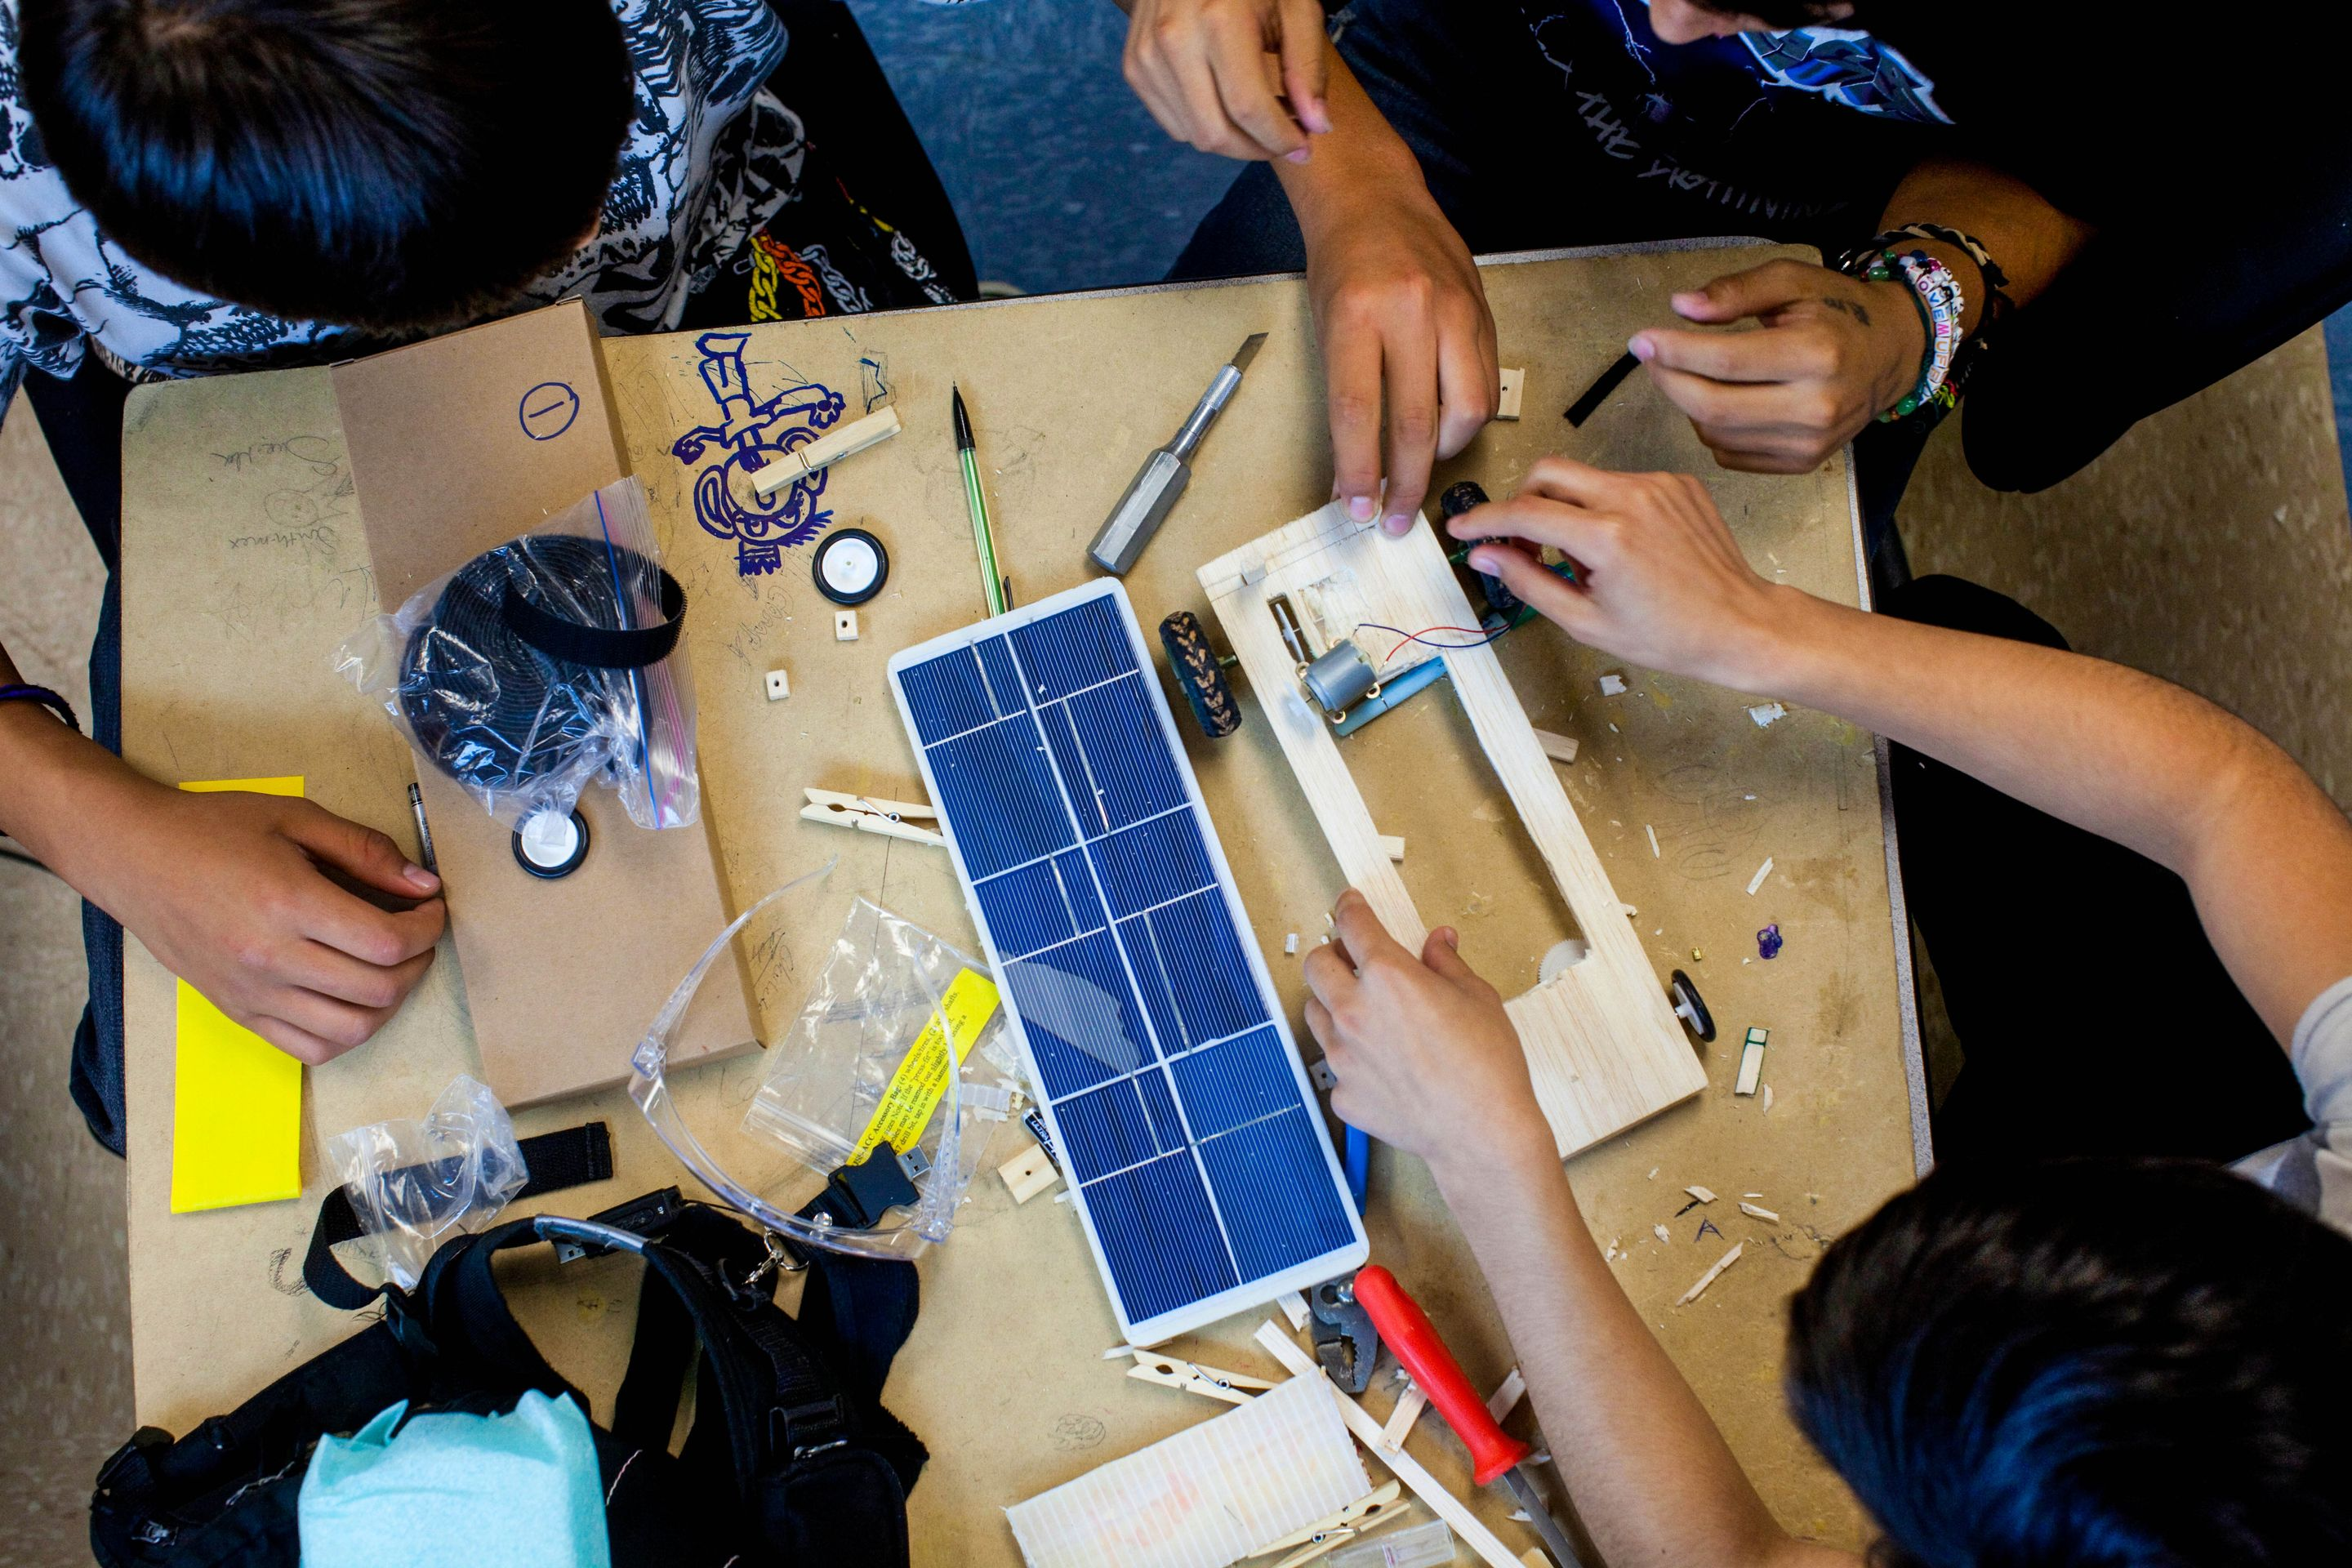 High school students working on a solar car project